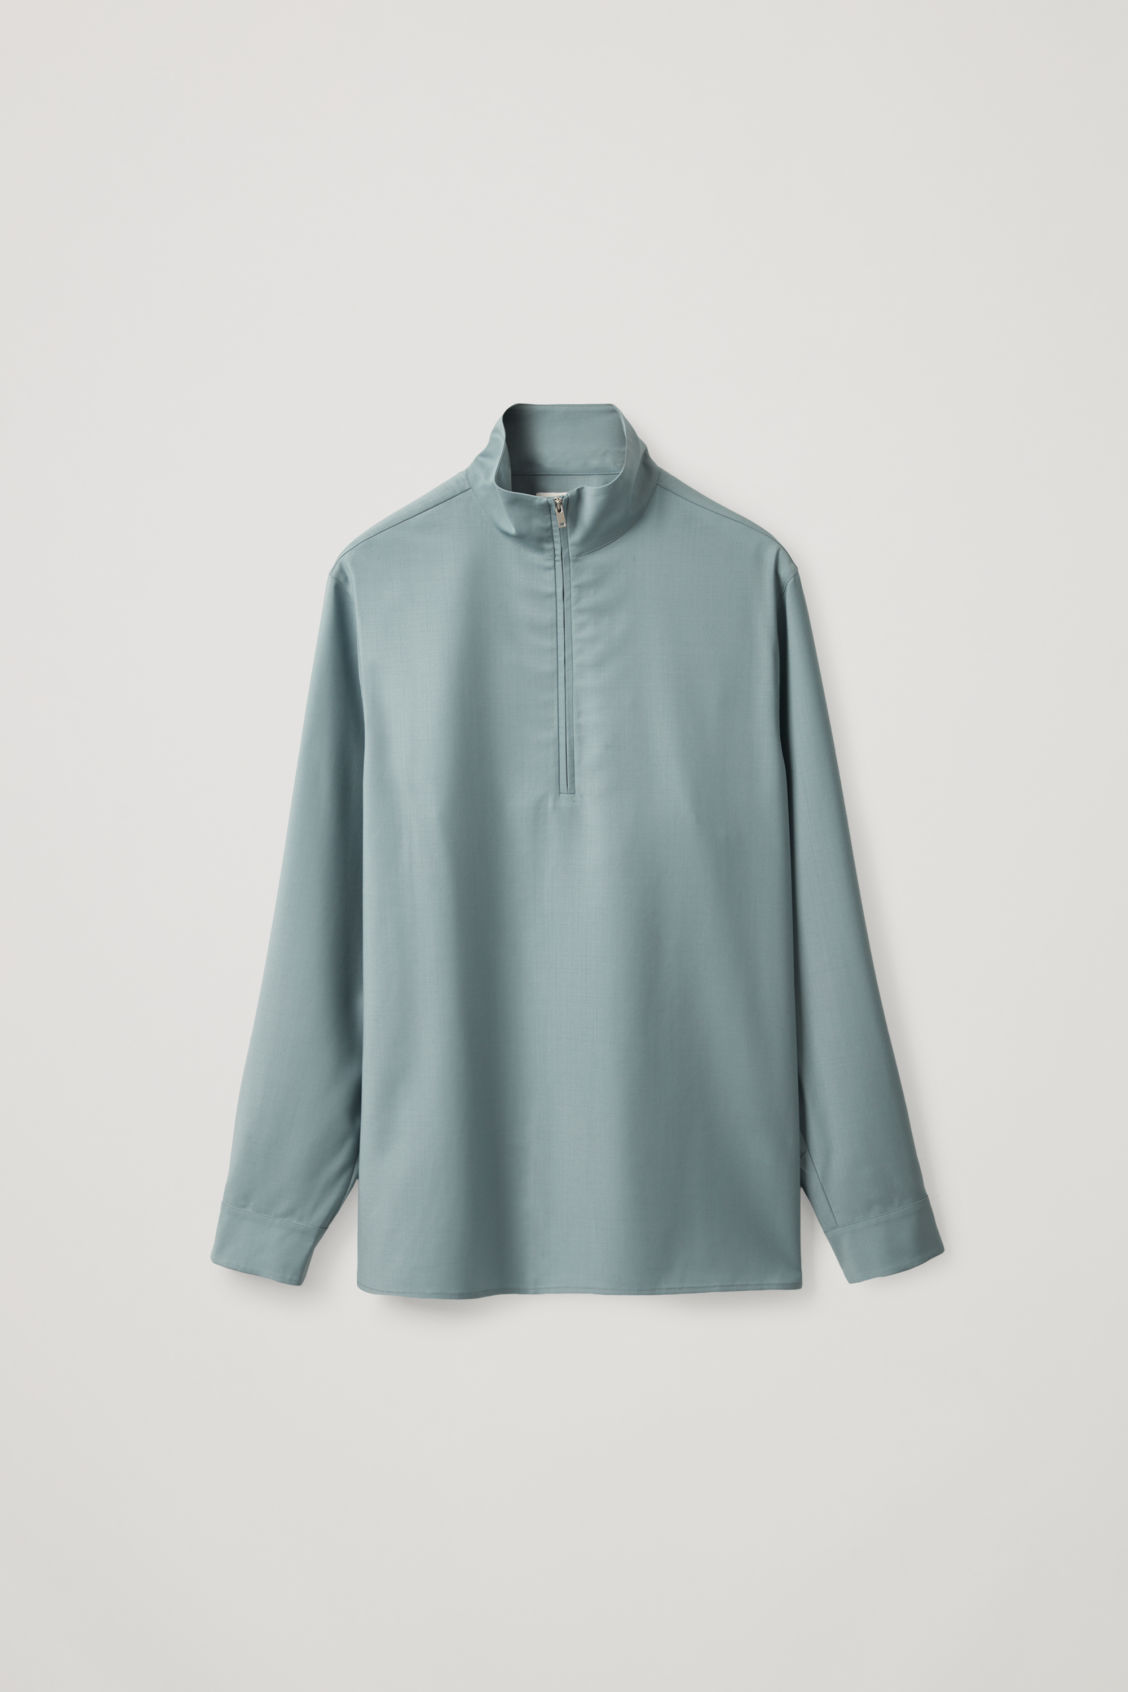 Cos Long-sleeved Half-zip Shirt In Turquoise